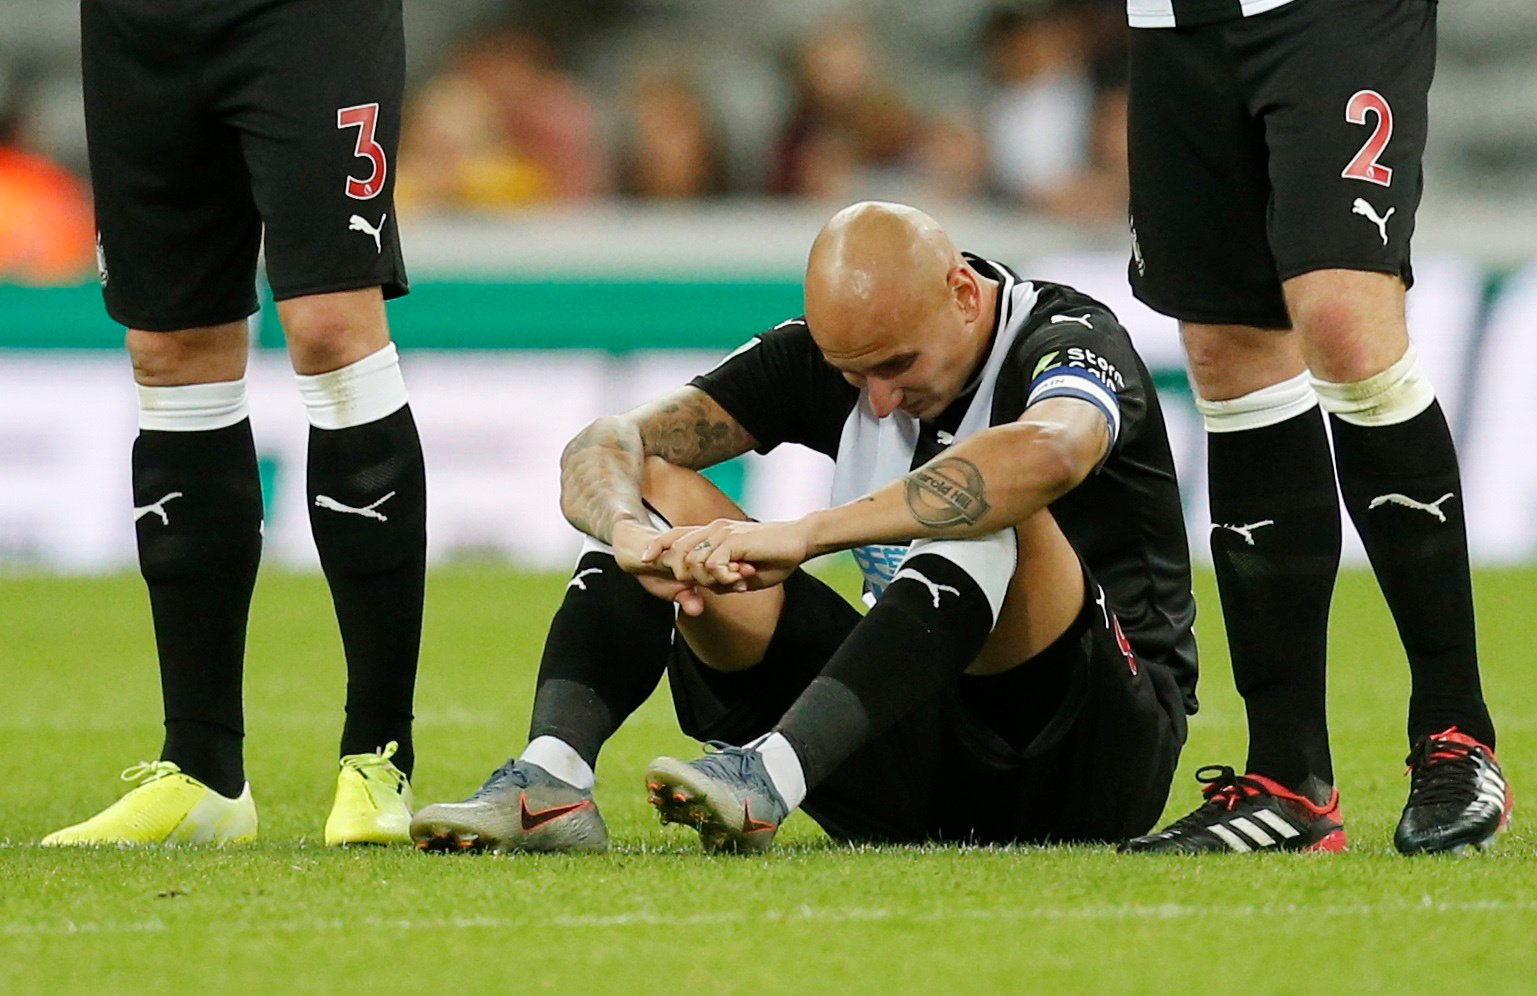 Newcastle: Fans react as Shelvey refutes suggestion he is lazy